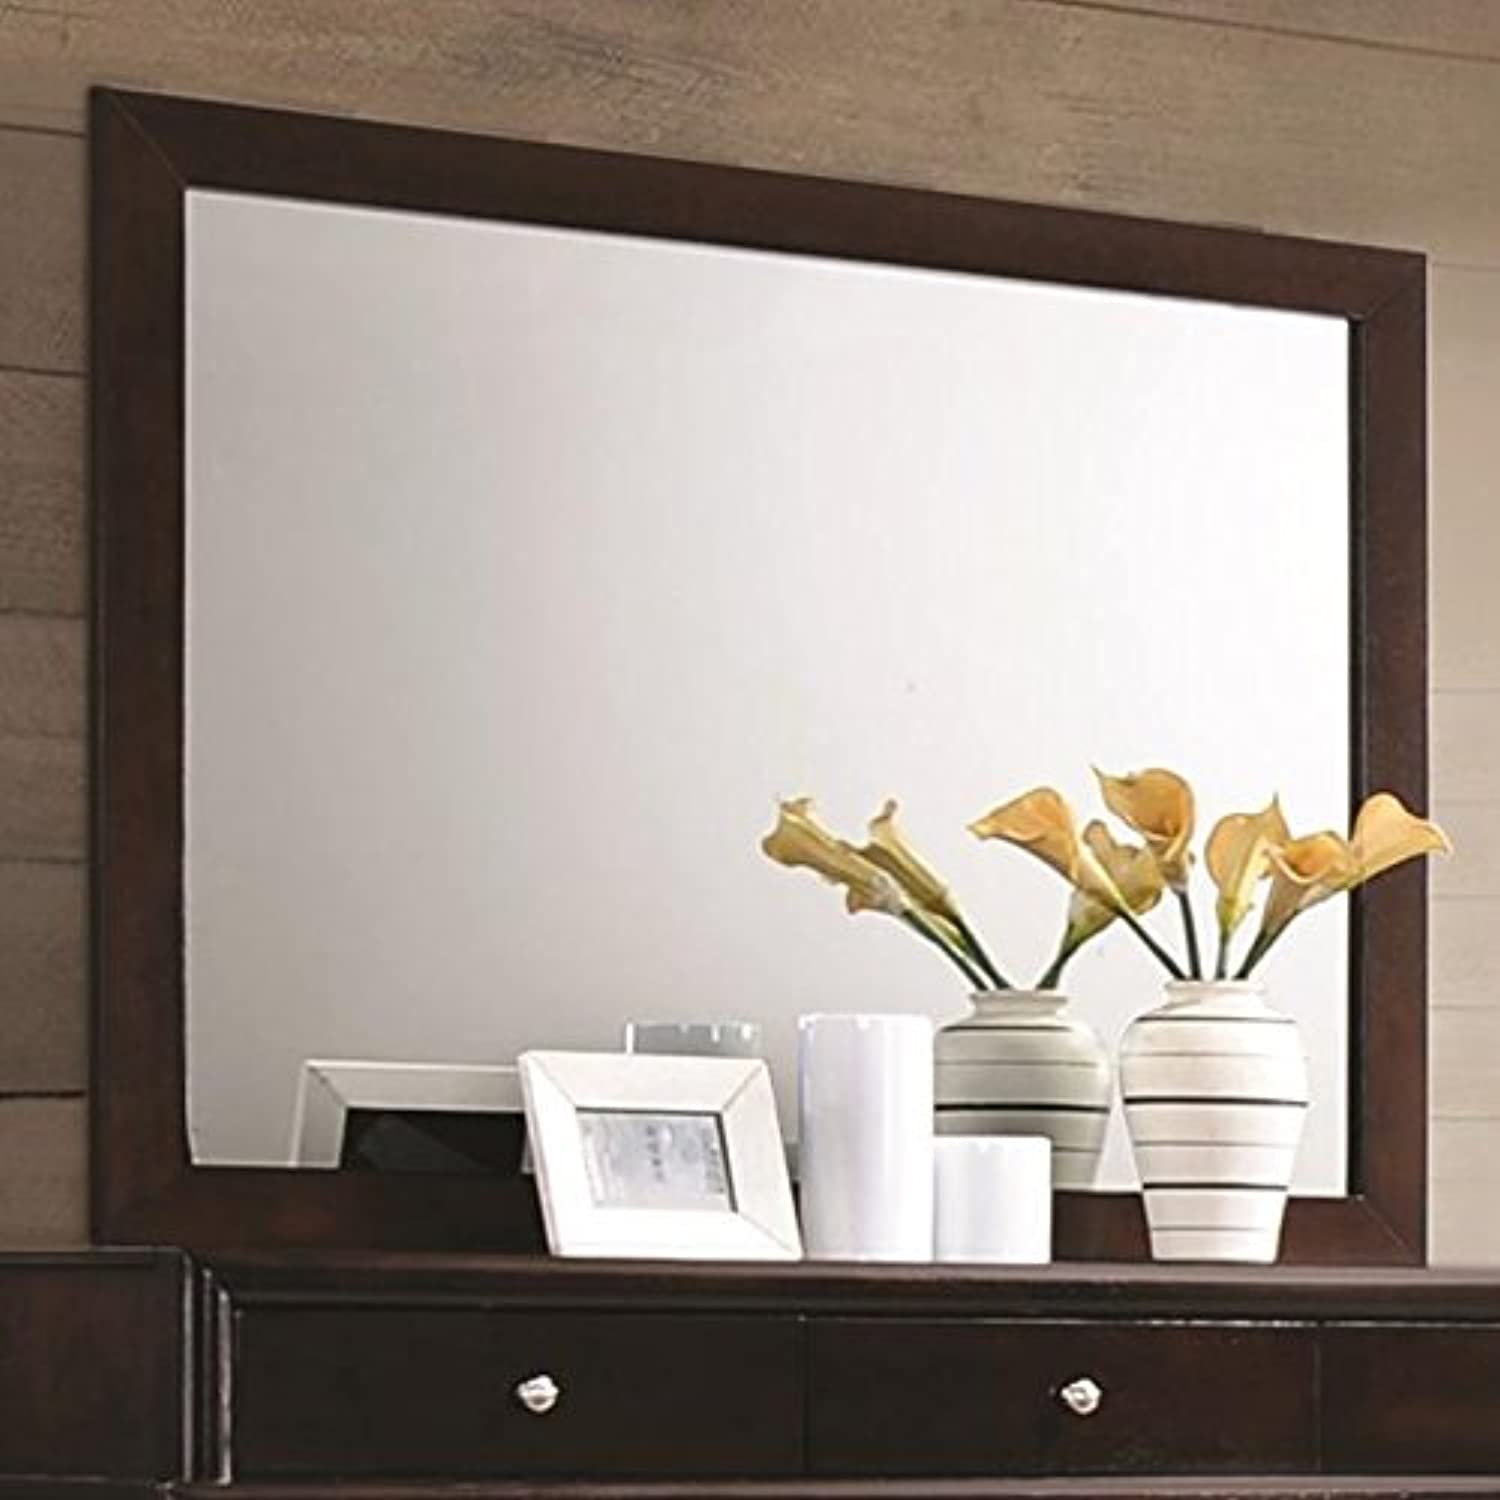 Benzara BM172133 Wooden Framed Stylish Rectangular Mirror, Brown